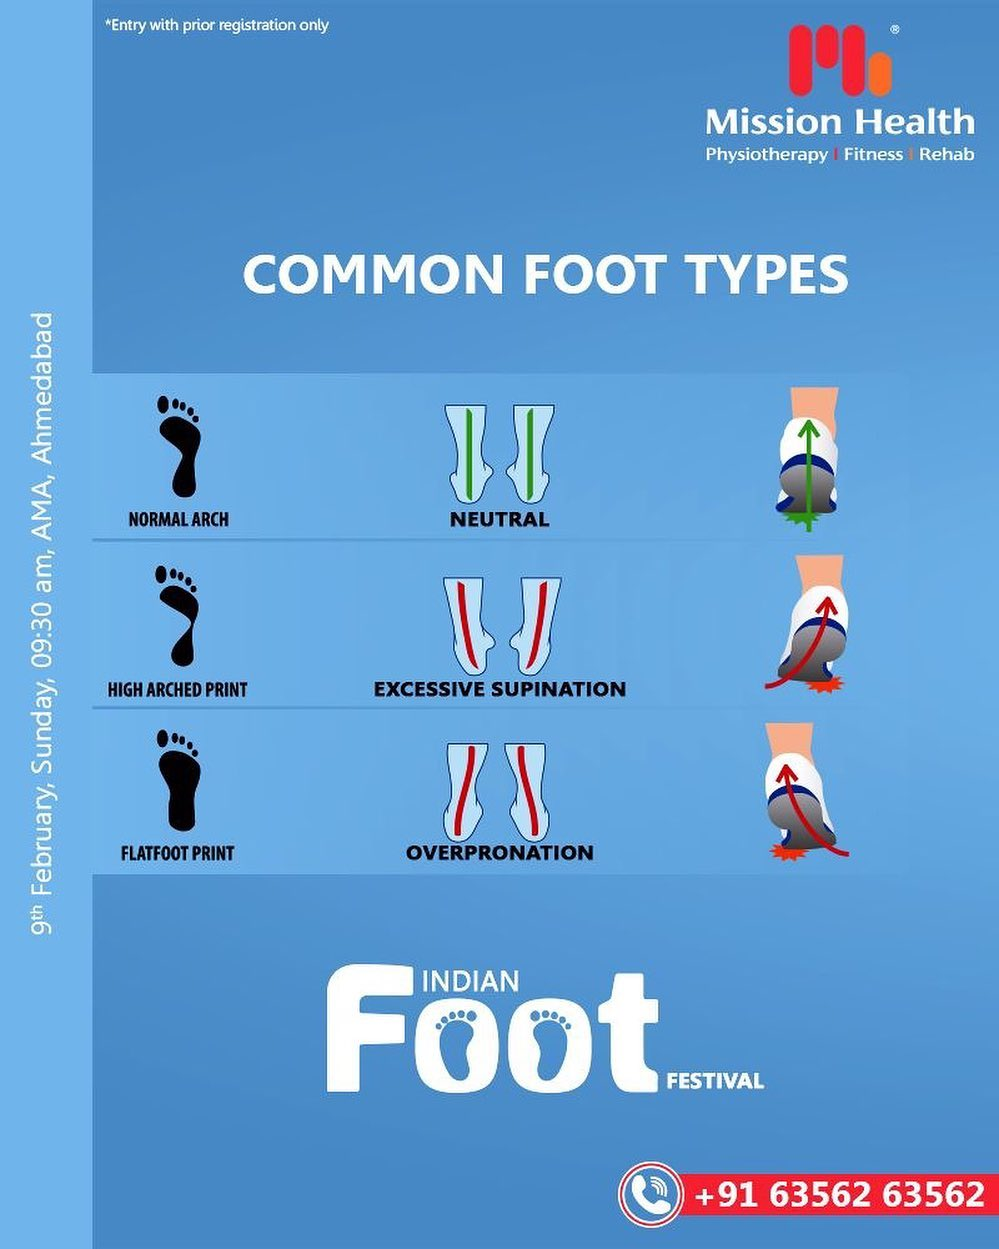 Look l Check l Click l Share  In simple four steps, get your registration done for the Indian FOOT Festival.  Learn all about FOOT abnormalities, causes, and their solutions. Visit us at the Indian FOOT Festival by Mission Health  Keep Reading this space for more updates!  Call: +916356263562 Visit: www.missionhealth.co.in  #IndianFootFestival #ComingSoon #FootClinic #footpain #footcare #foothealth #heelpain #anklepain #flatfeet #painrelief #healthyfeet #happyfeet #MissionHealth #MissionHealthIndia #MovementIsLife